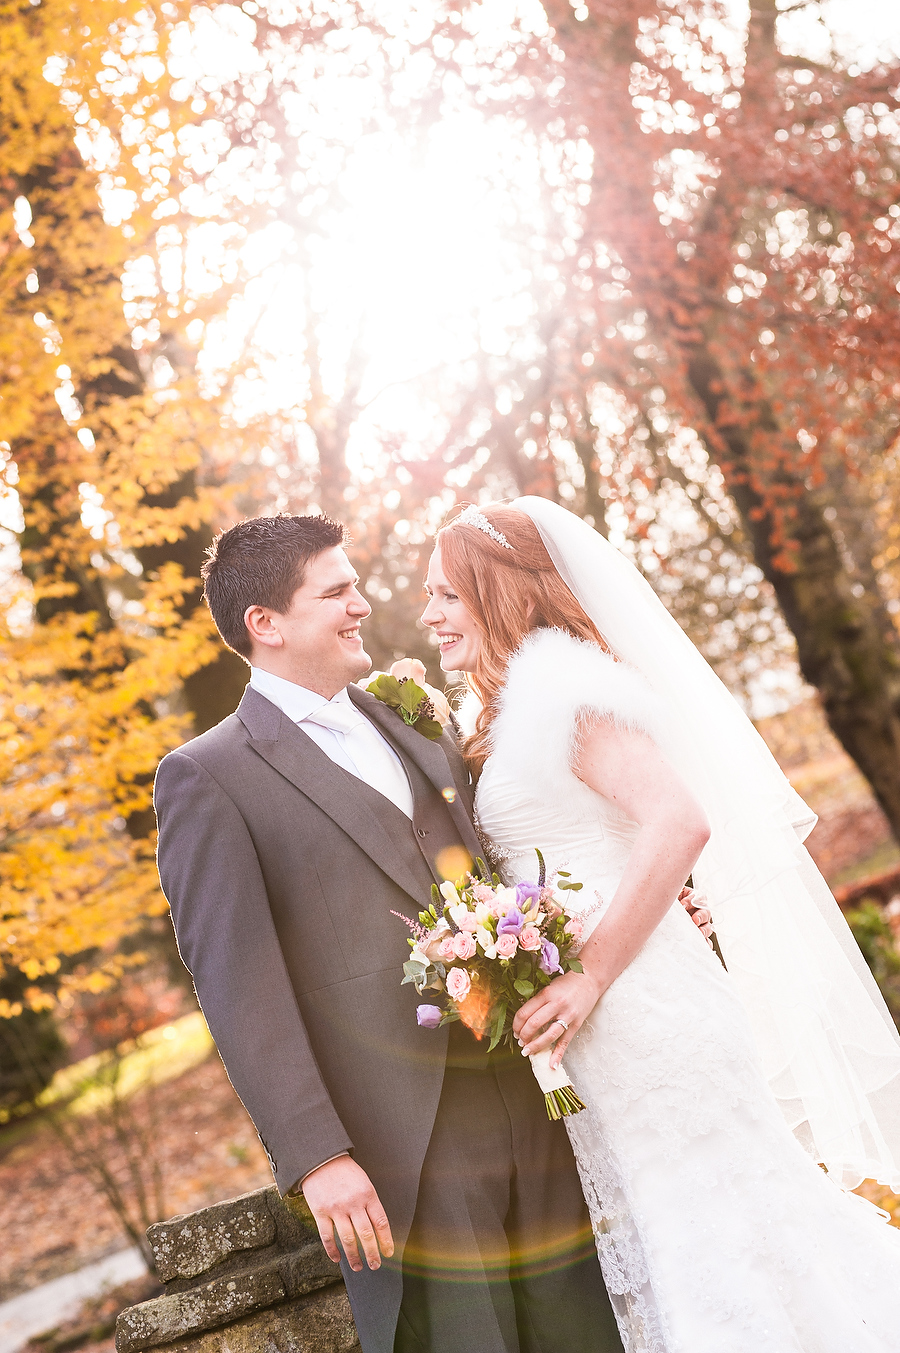 Autumn portraits with beautiful lighting at Arboretum in Walsall by Aldridge Wedding Photographer Barry James